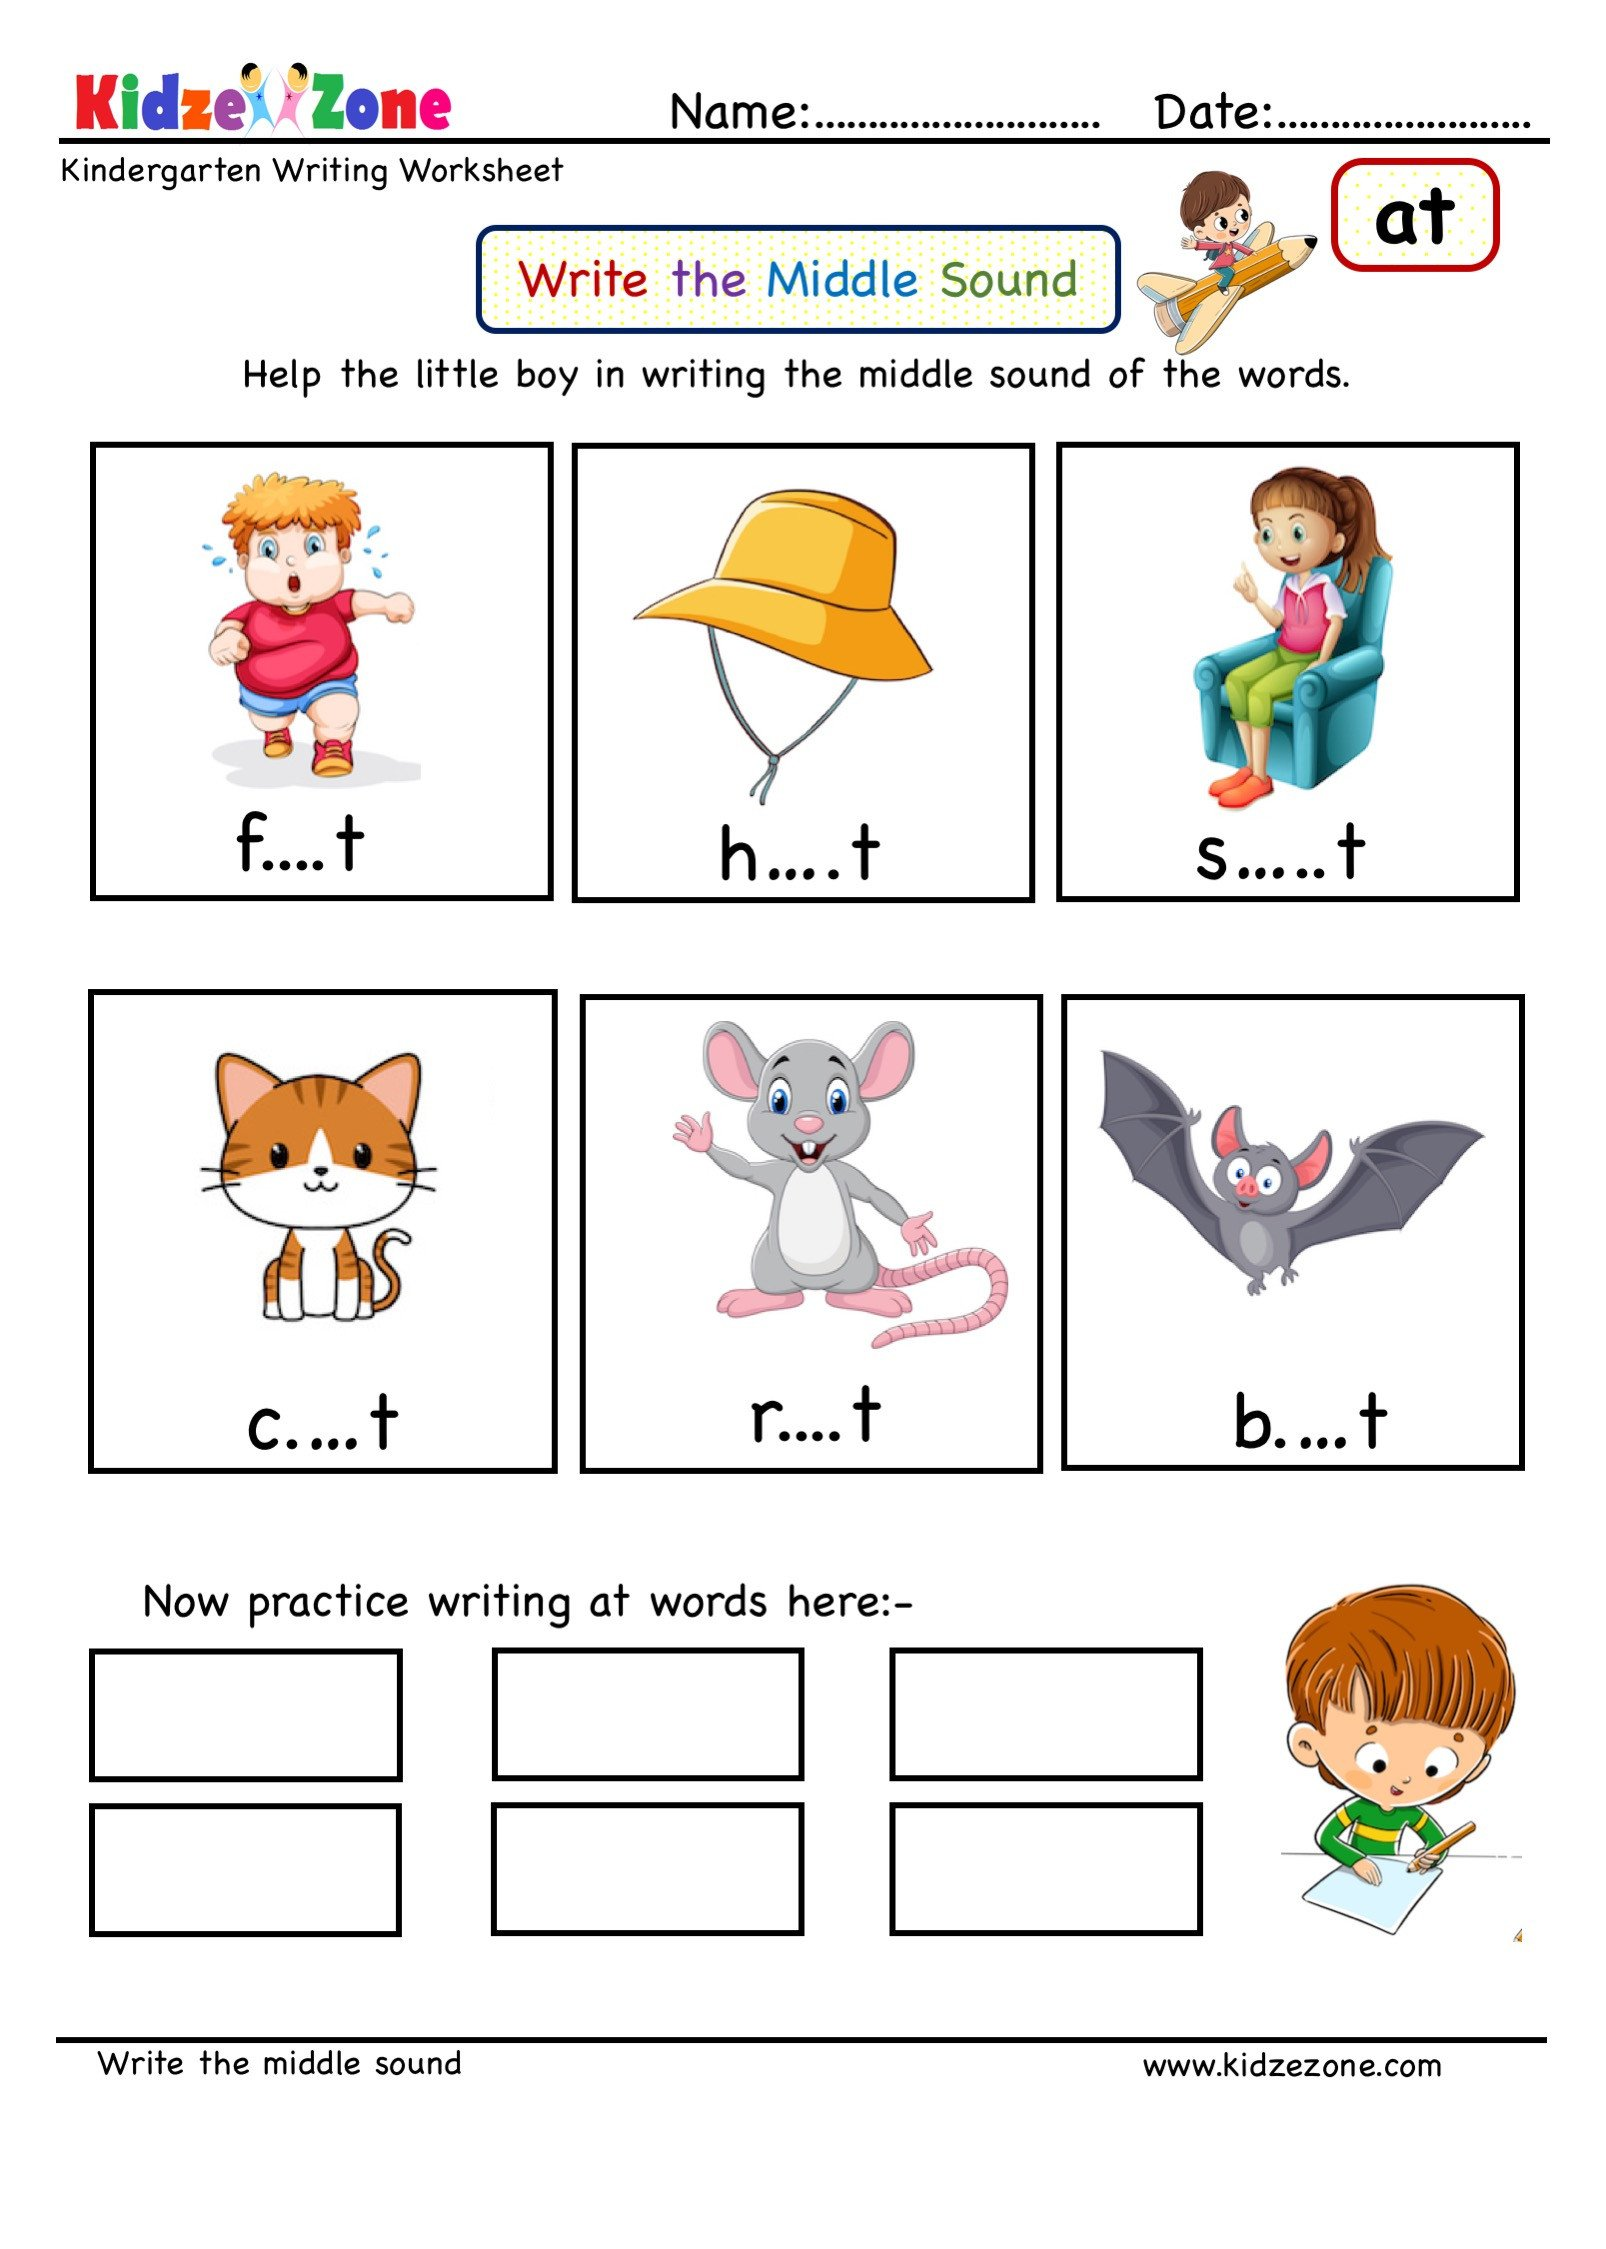 Middle sound Worksheets Kindergarten Worksheets at Word Family Writing Middle sound